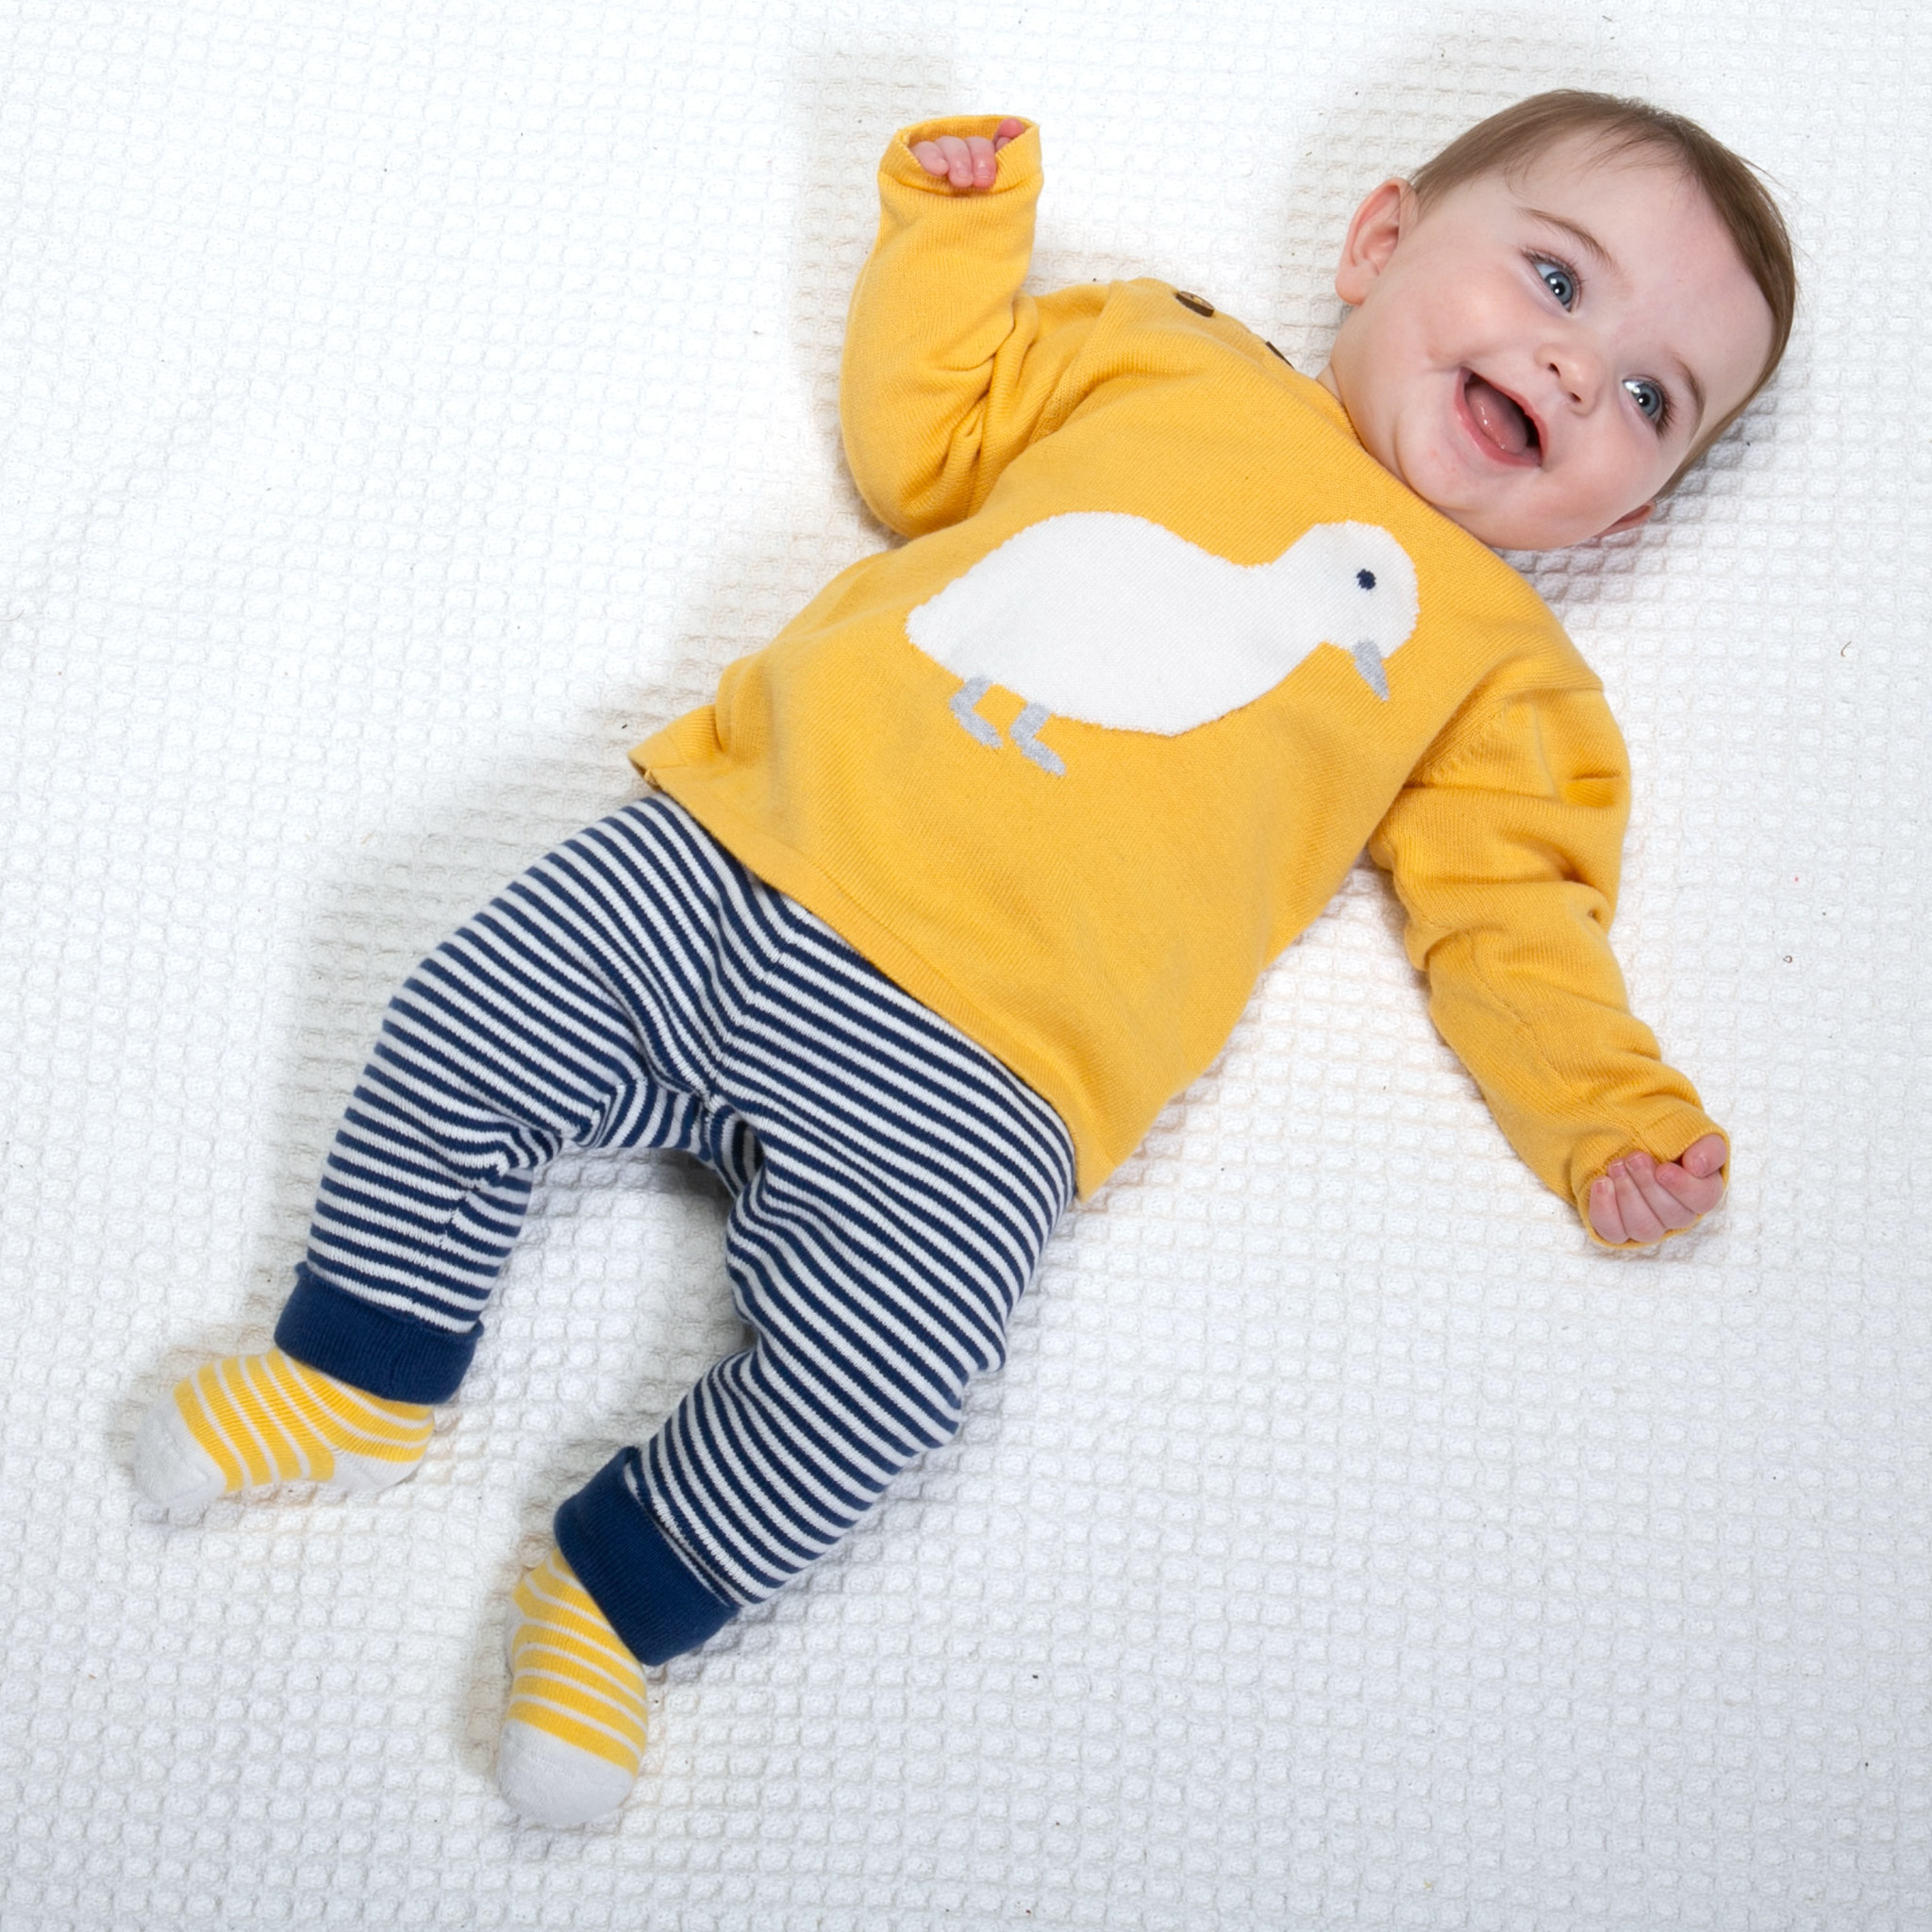 Baby wearing Organic Cotton Little Duckling Knitted Set by Kite Clothing - Cotswold Baby Co